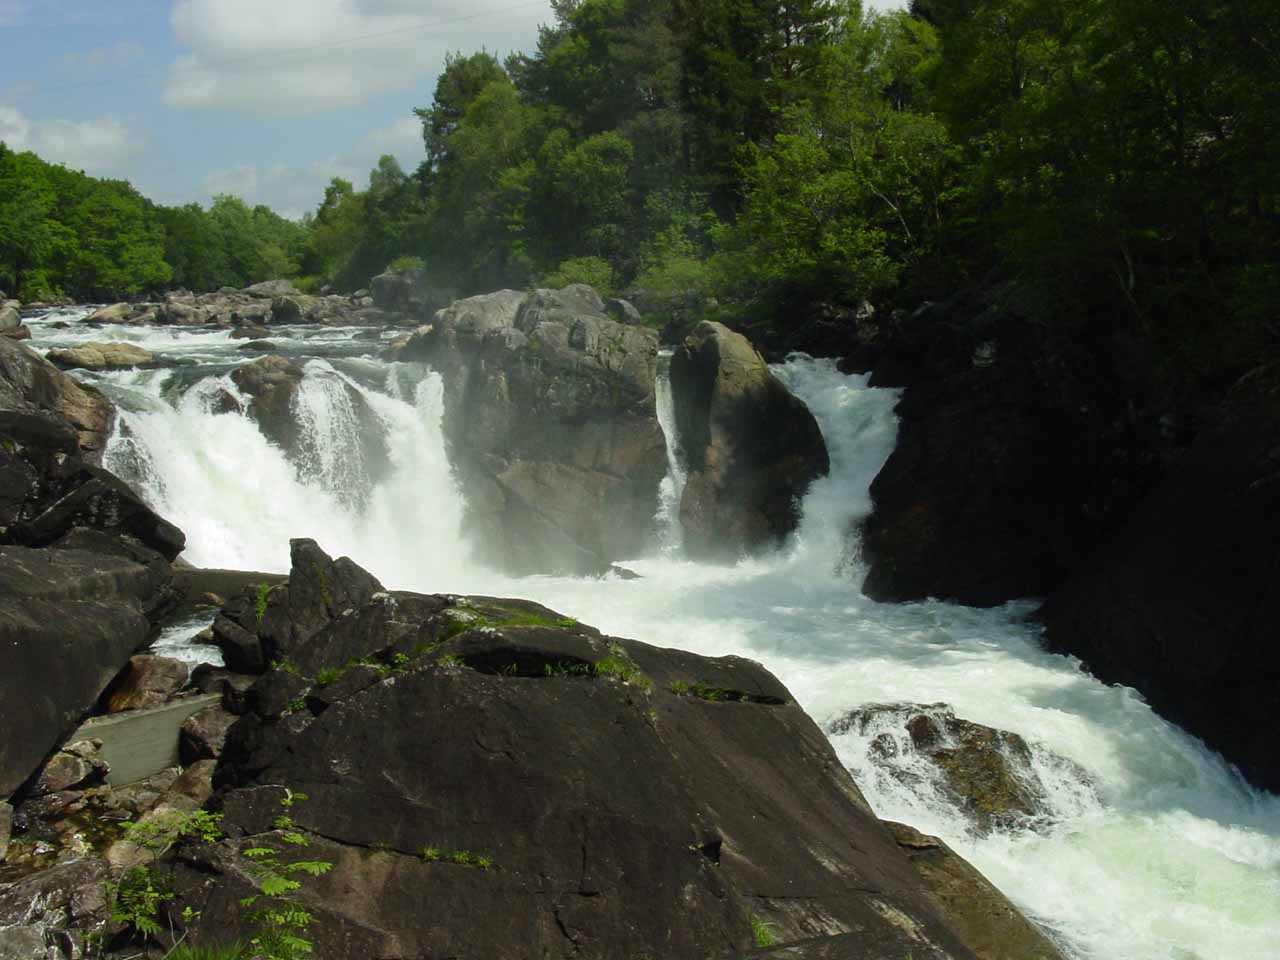 Another look at Tengsfossen.  Notice the salmon ladder on the left amongst the rocks